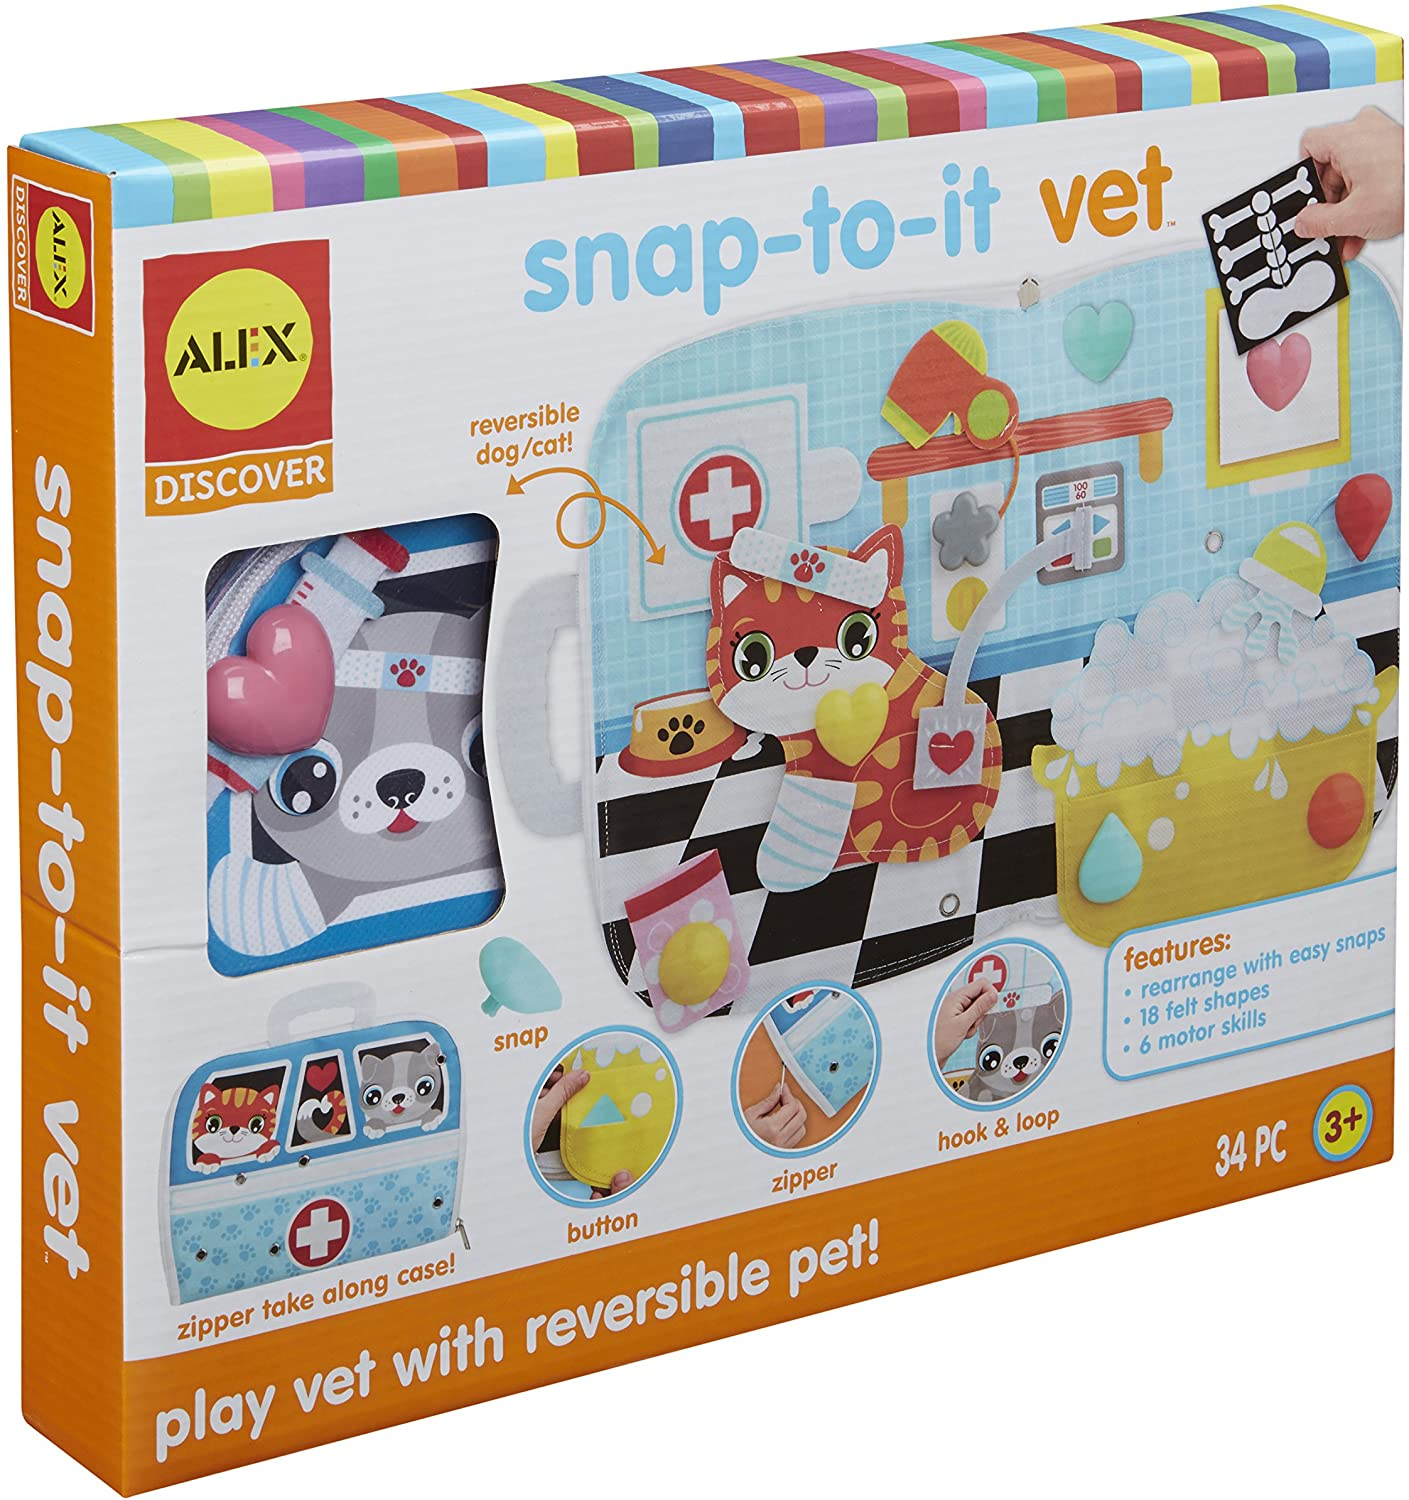 Alex Discover Snap-to-It Vet, Multicolor Kids Toddler Art and Craft Activity